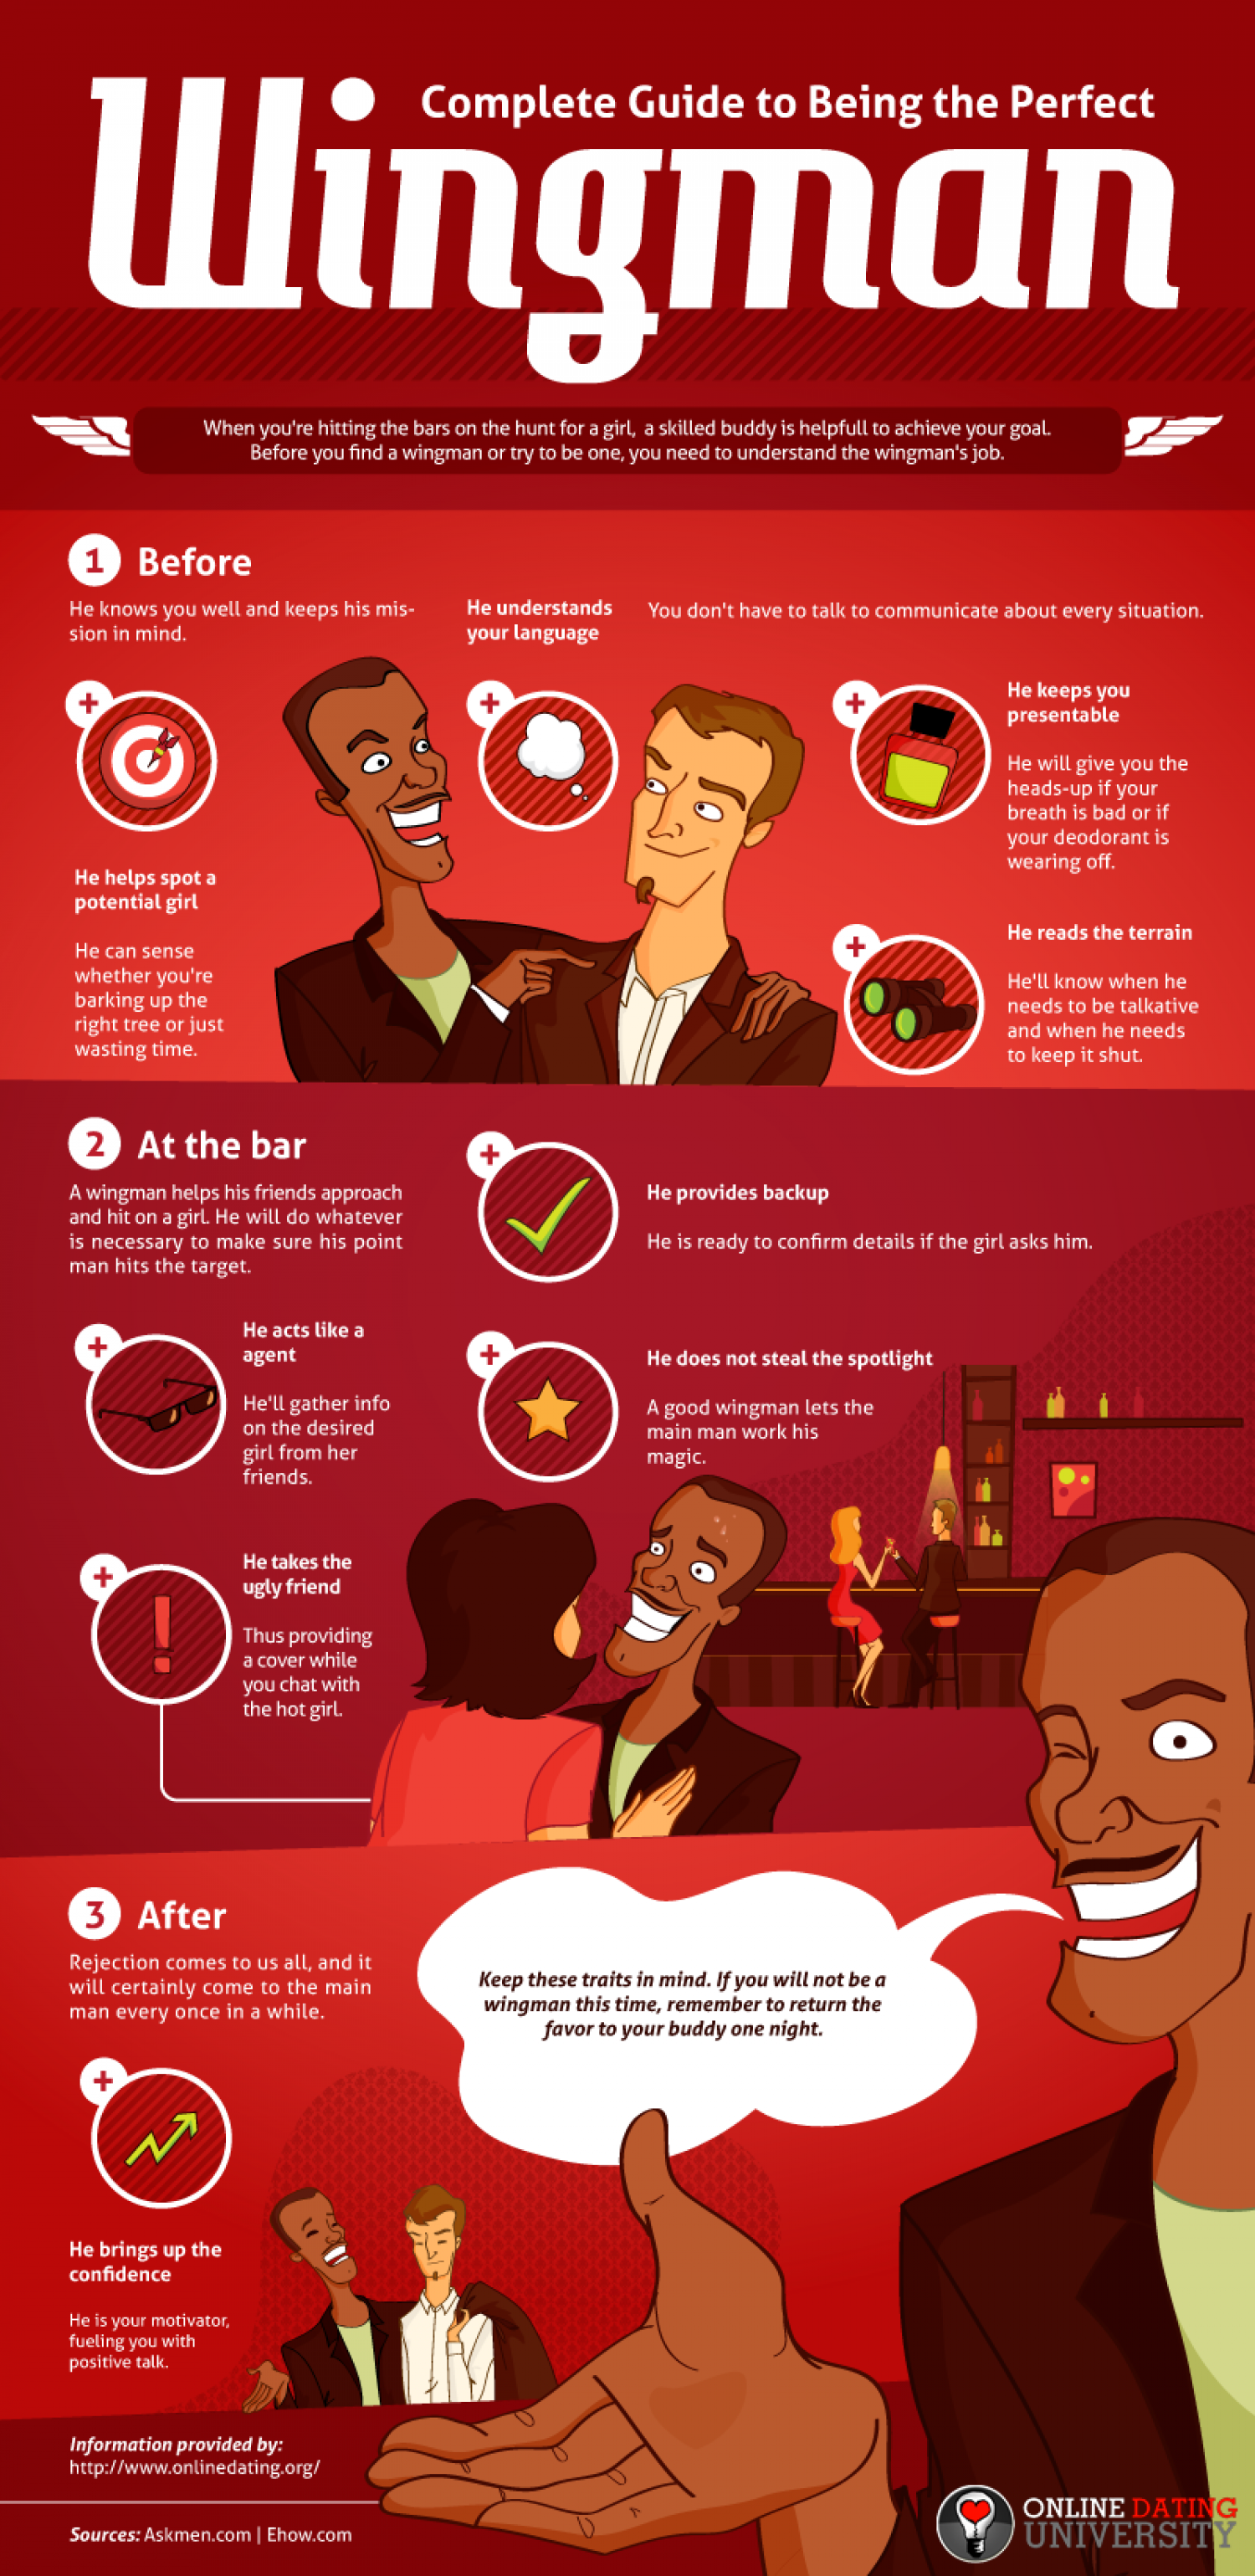 Complete Guide to Being a Wingman Infographic